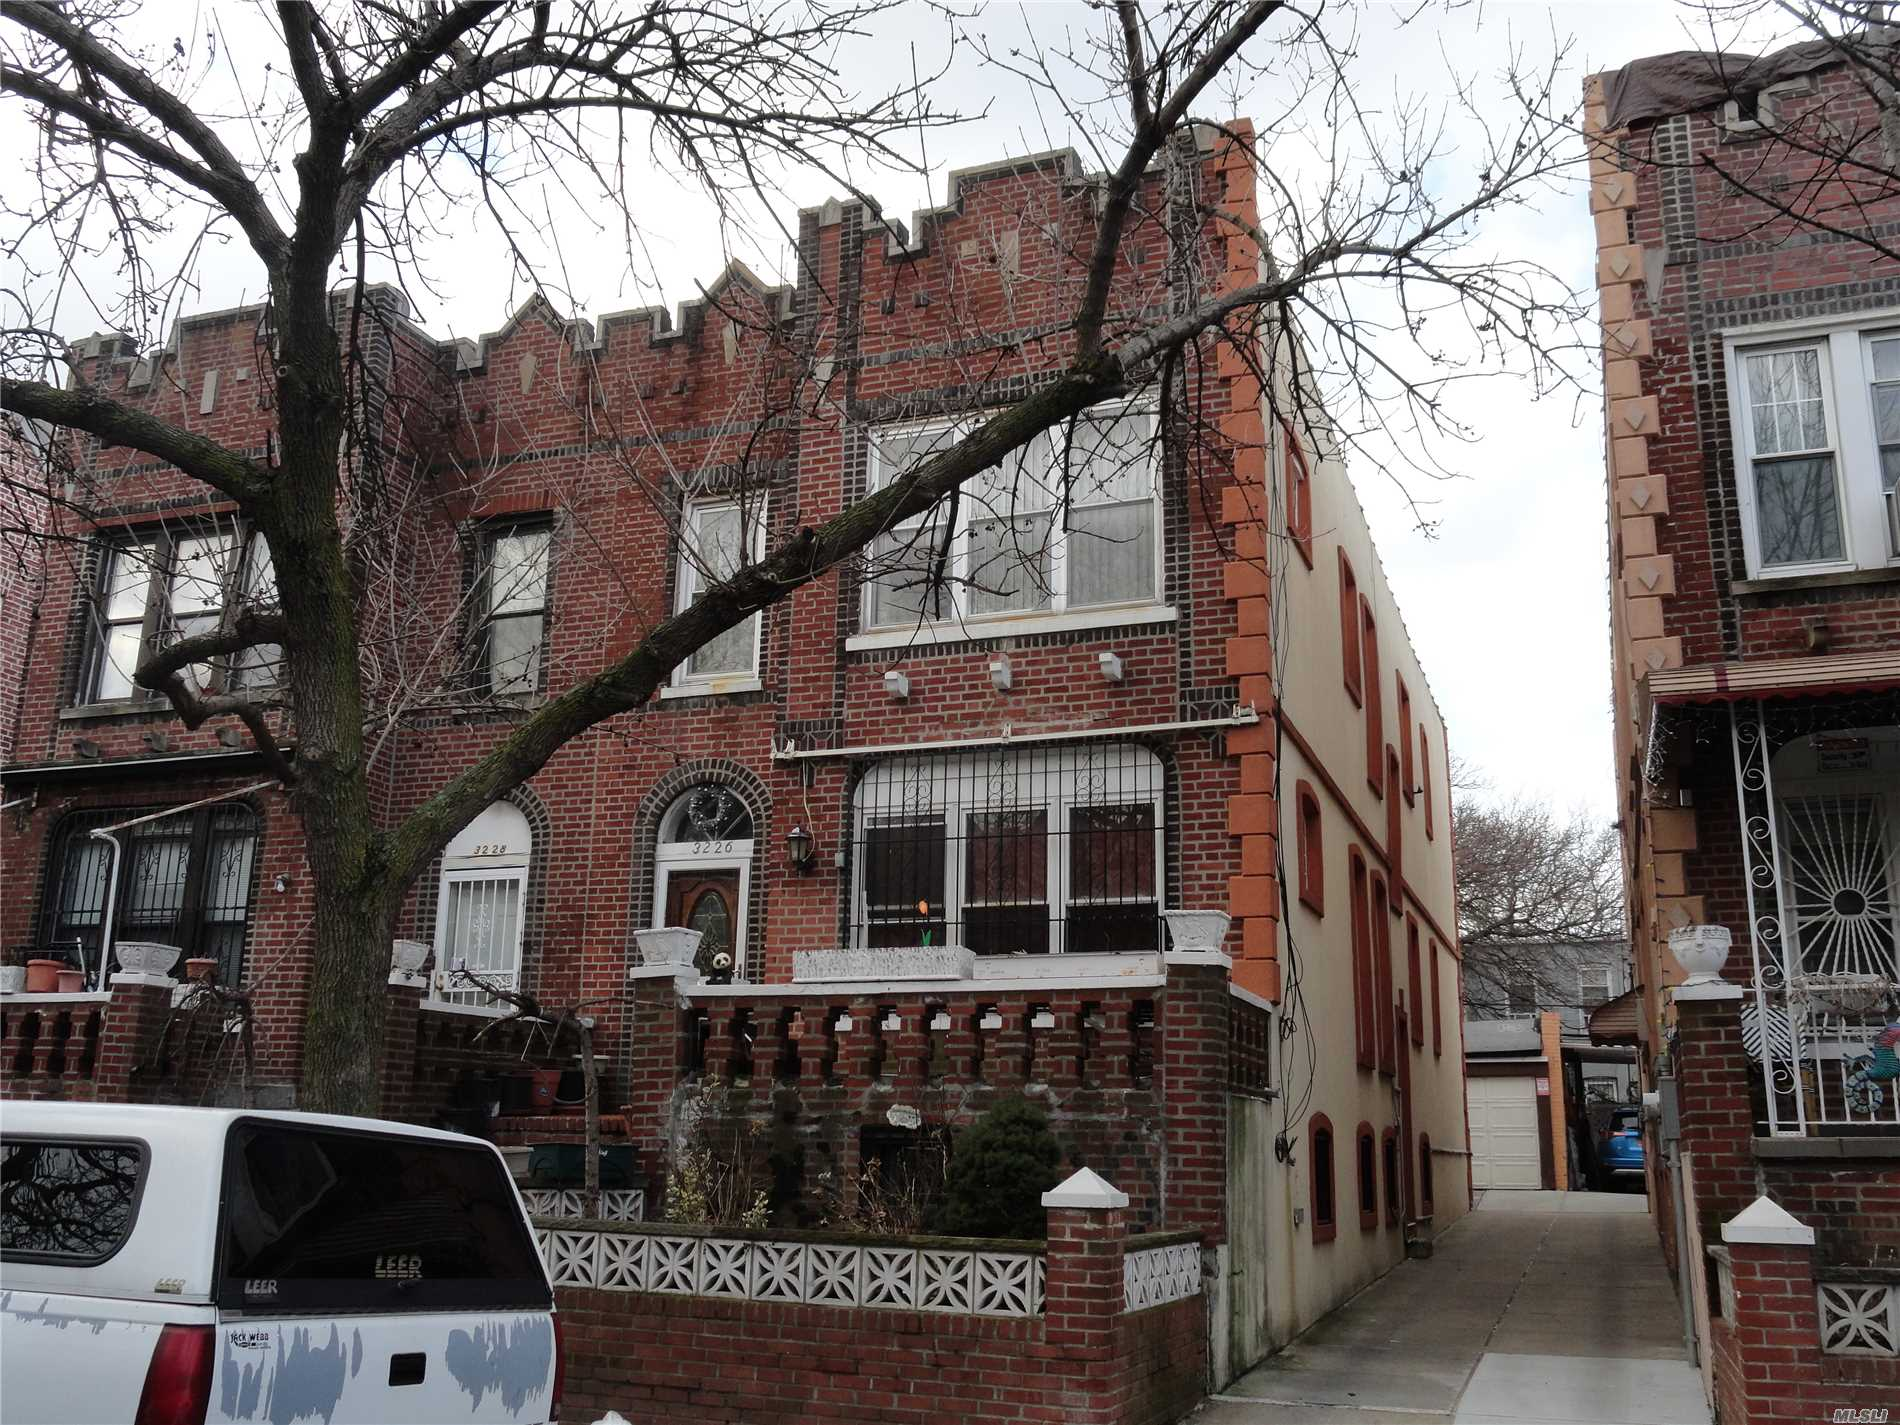 Location!! Location!! Location!! When Location Meets Convenience And Affordability!! This Huge 2 Family Solid Brick Home Has It All!! Near All Kinds Of Stores And Shops, Near Public Transportation And Near Major Highways!! About 20 Minutes Drive To Midtown Manhattan!! Great Rental Income, 2 Car Garage Full Finished Basement And Much More!! Interest Rates Are Still Low And Rents Are At An All Time High, Making This A Perfect Time To Own This Property!! Do Not Delay, Call Today For More Info!!